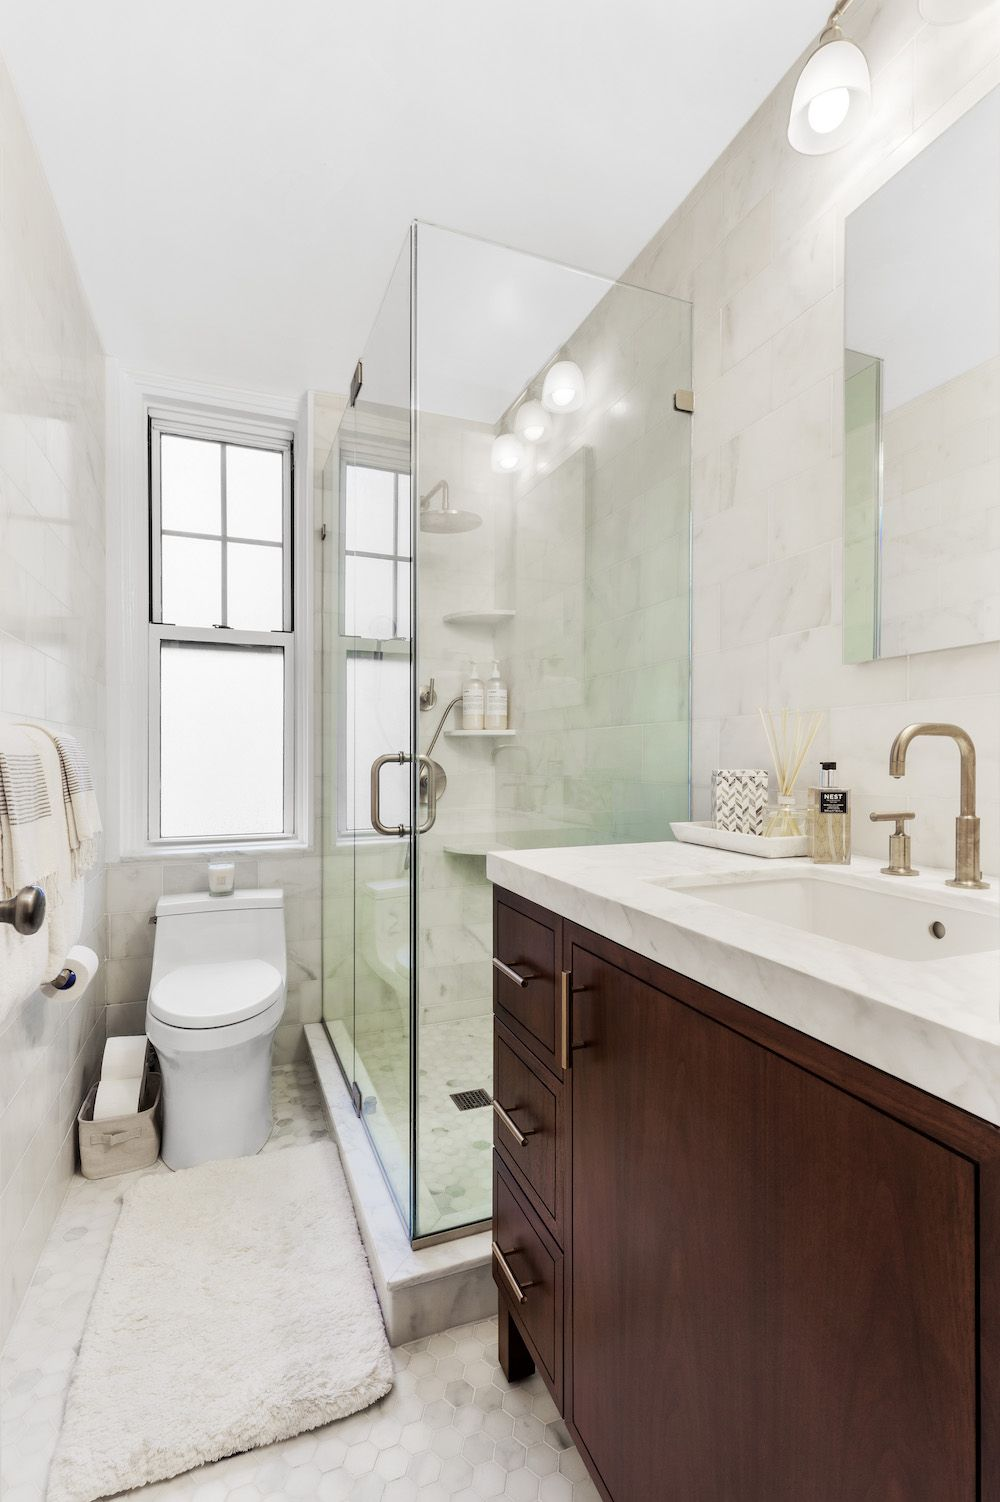 A Leak Leads To A Luxe Remodel Bathroom Renovation Trends Cottage Style Bathrooms Bathroom Vanity Trends